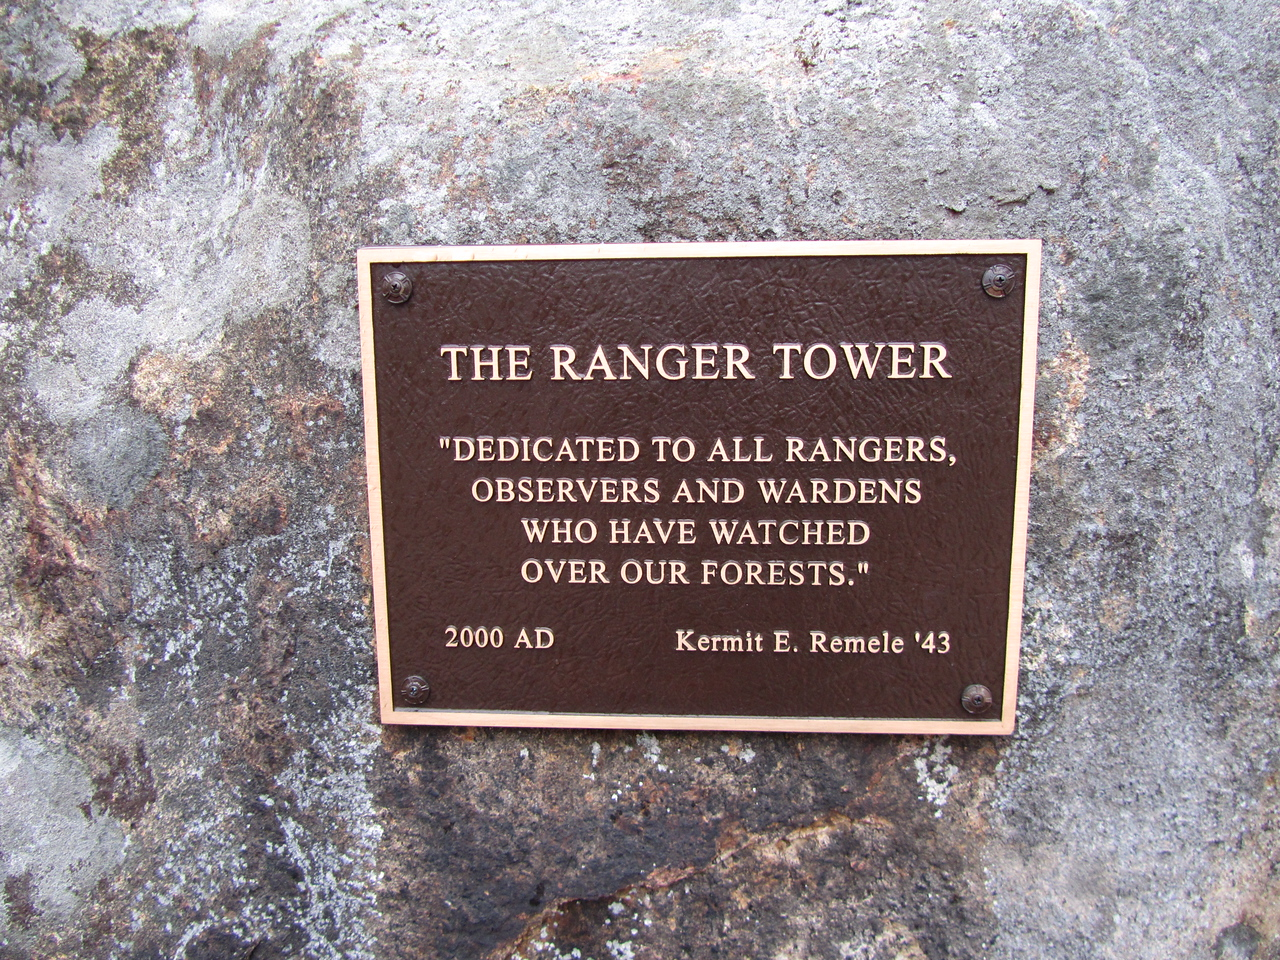 Thank you rangers, for keeping the forests fire-free.